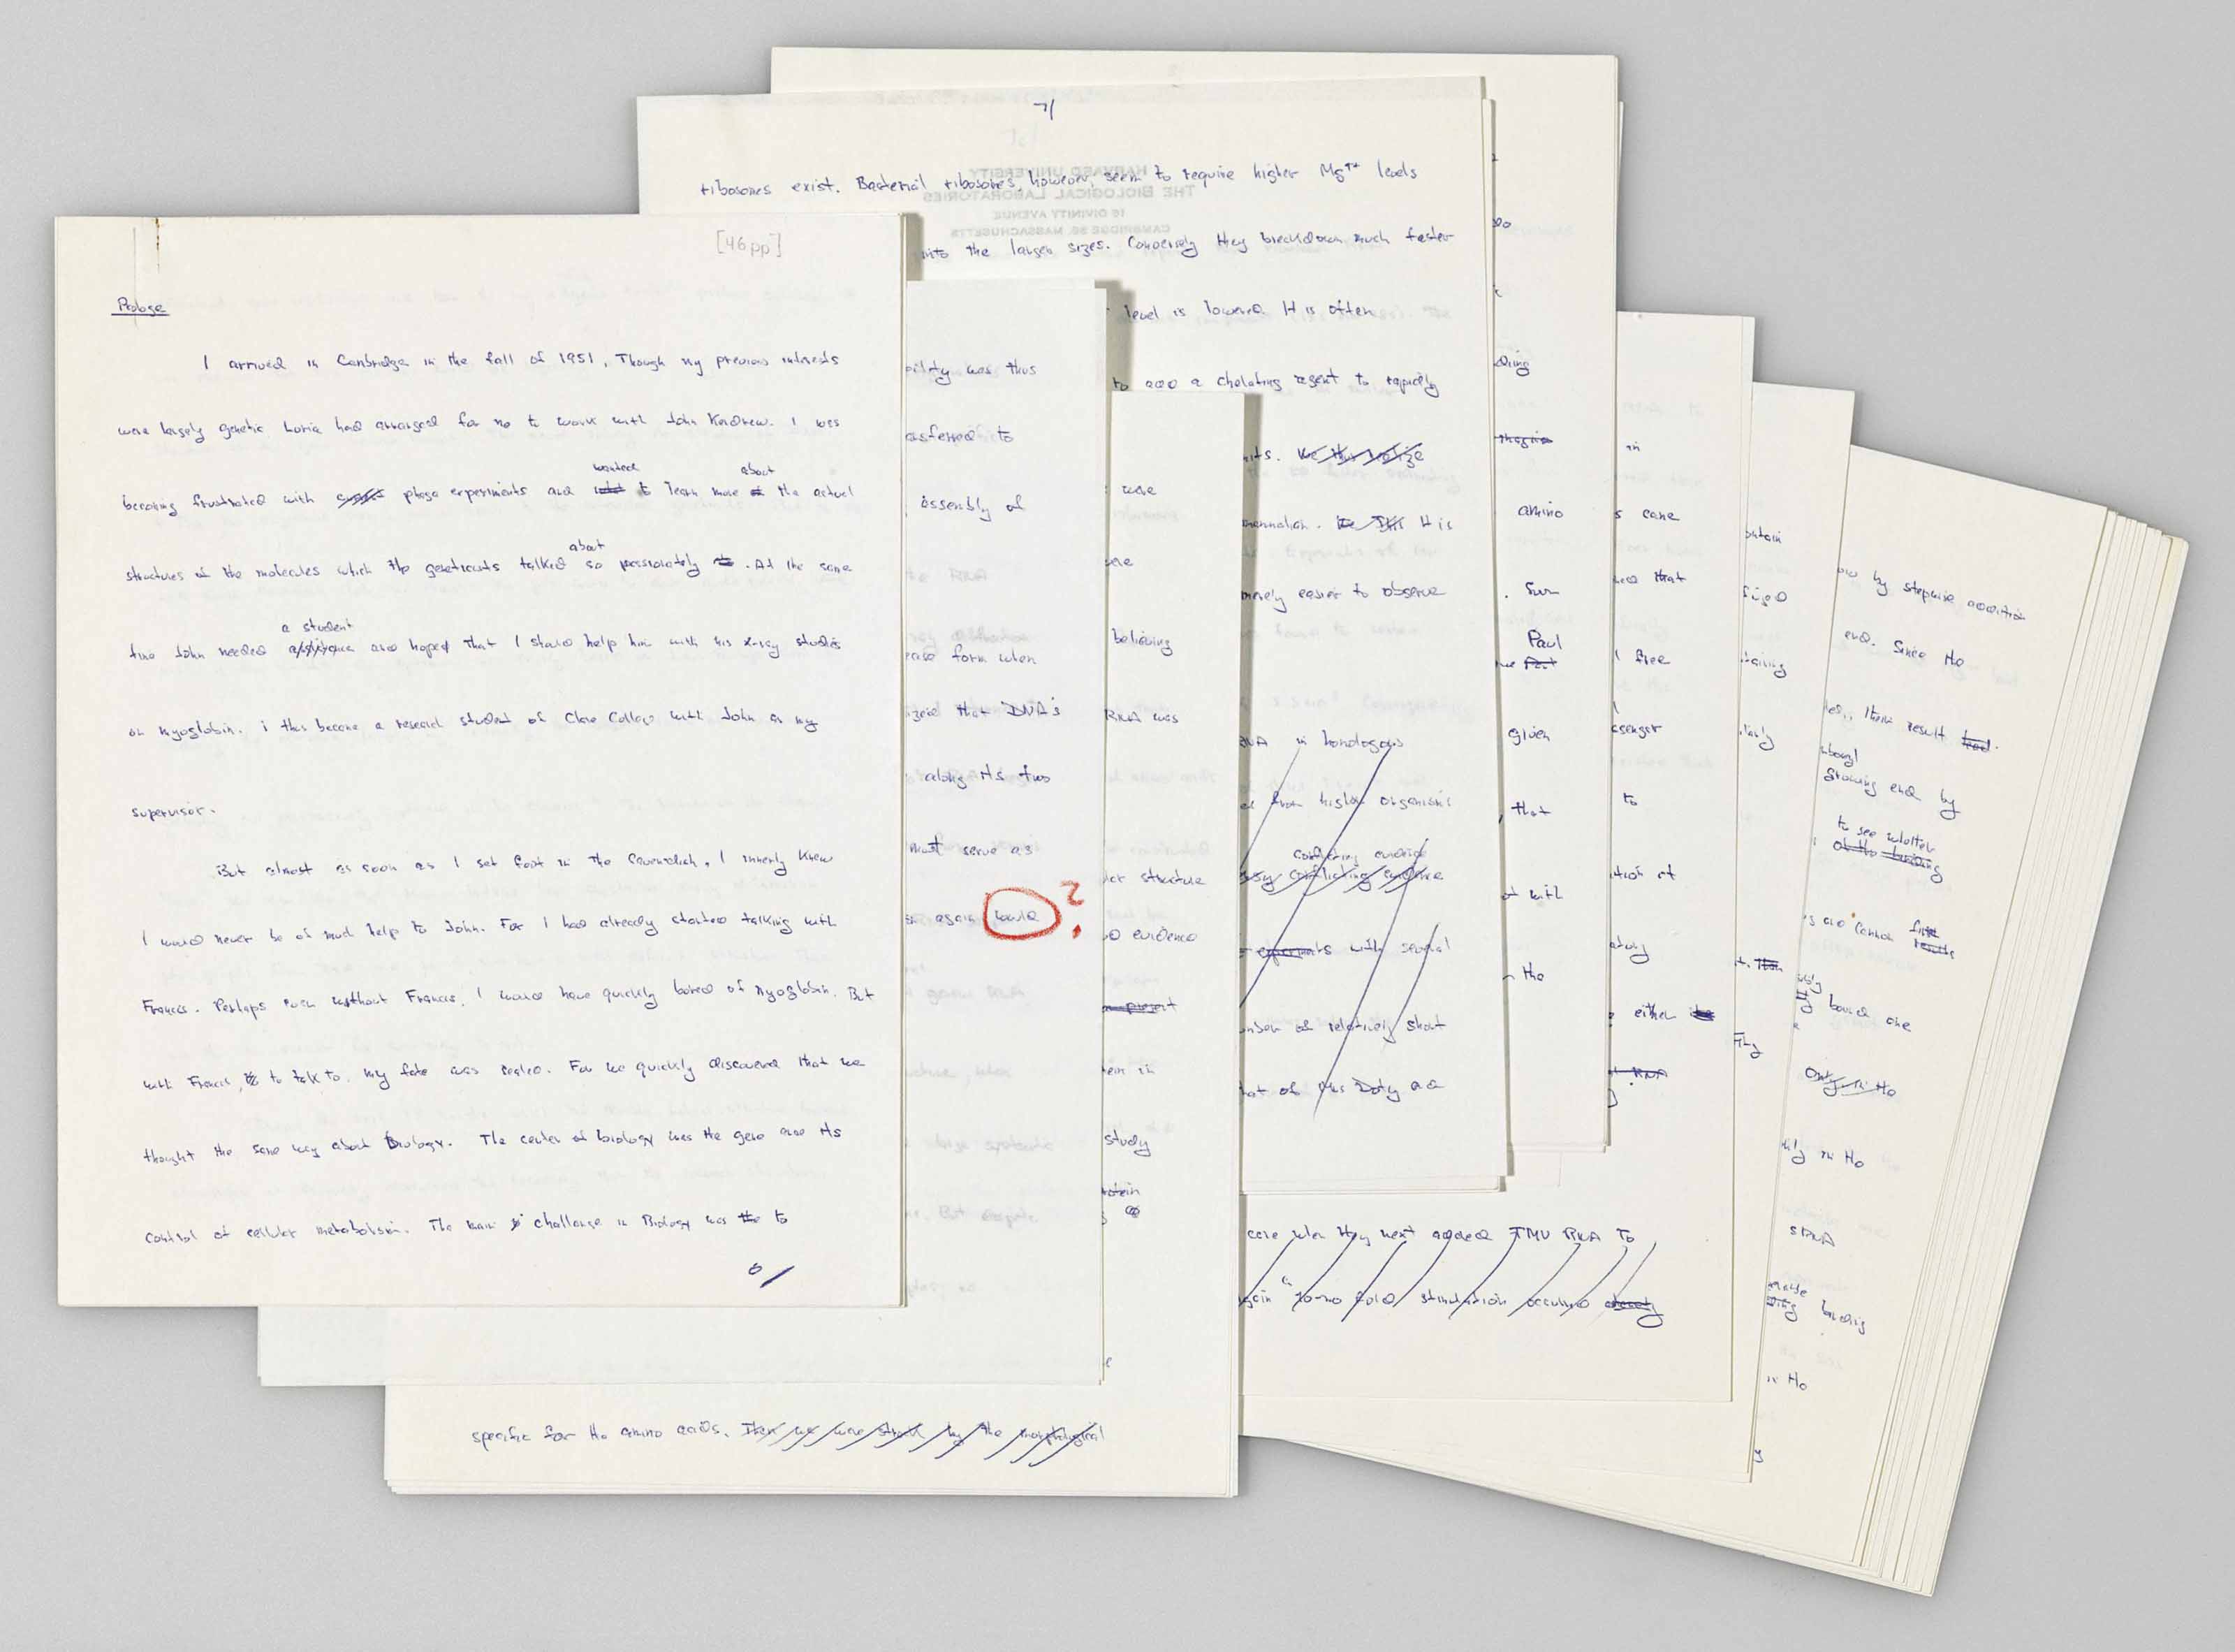 """WATSON, James D. """"The Involvement of RNA in the Synthesis of Proteins."""" Original Holograph Manuscript for Watson's Nobel Lecture delivered on December 11, 1962. 46 pp., 4to in blue ink on rectos only."""